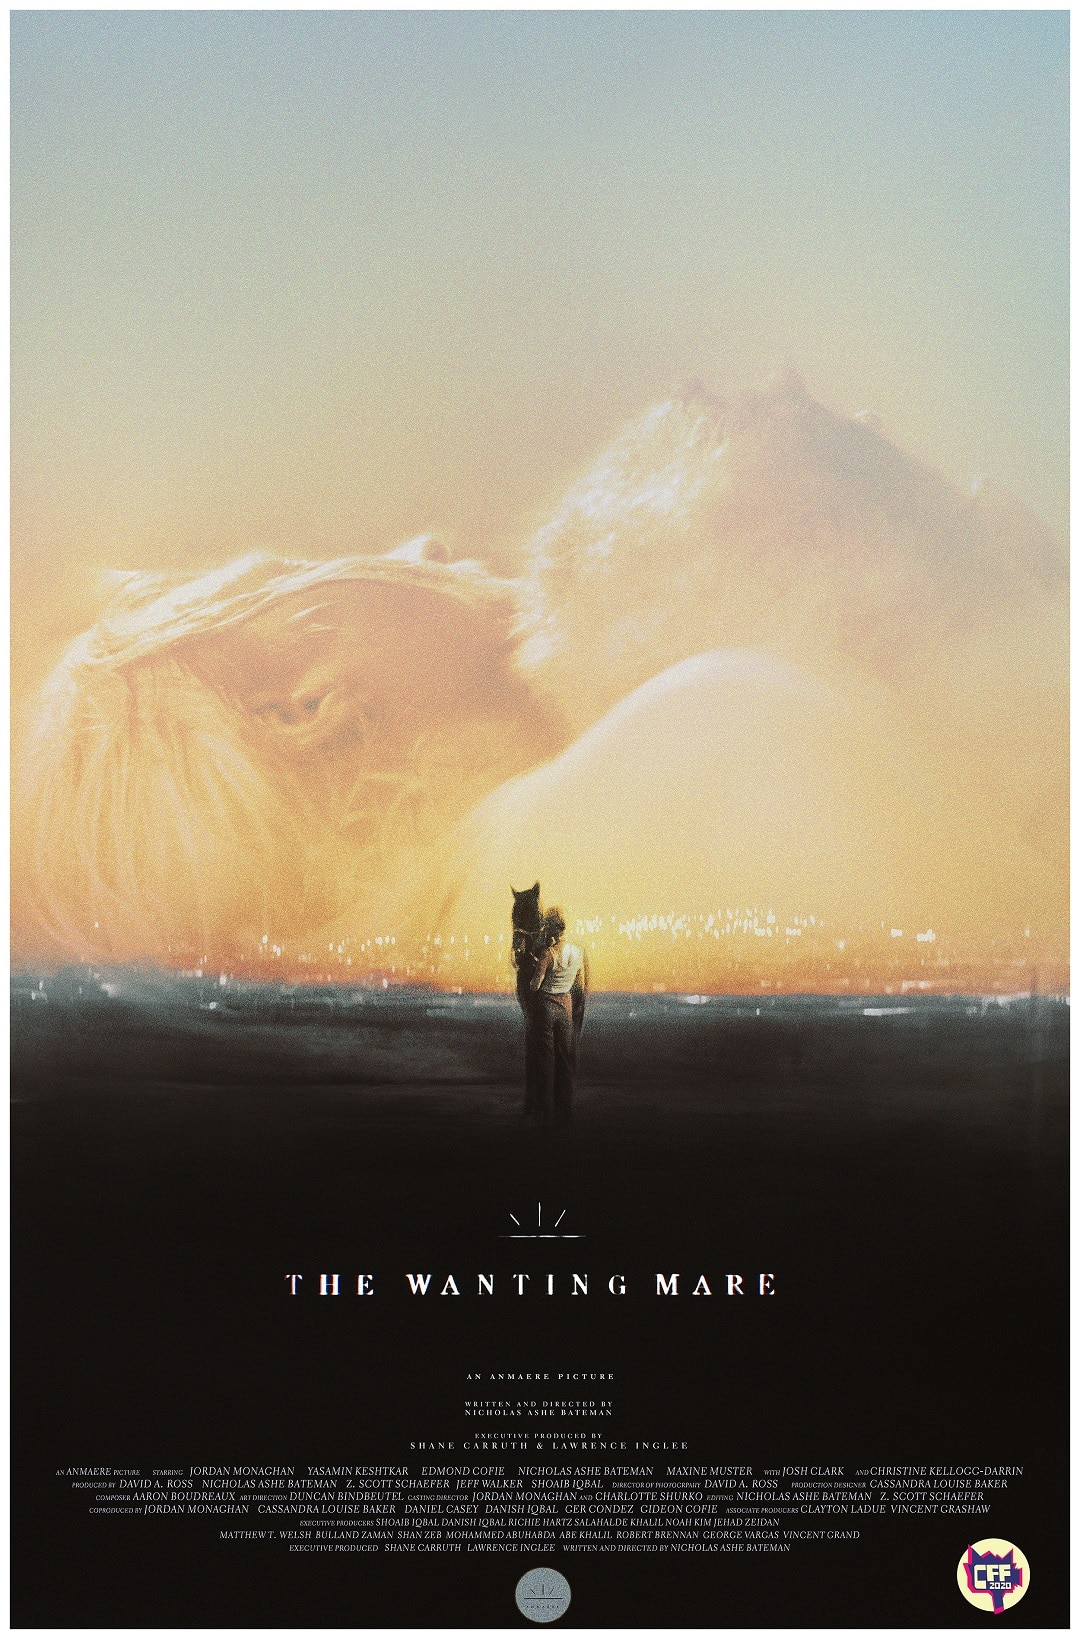 [Chattanooga 2020 Review] THE WANTING MARE is an Achingly Beautiful, Original Take on Fantasy